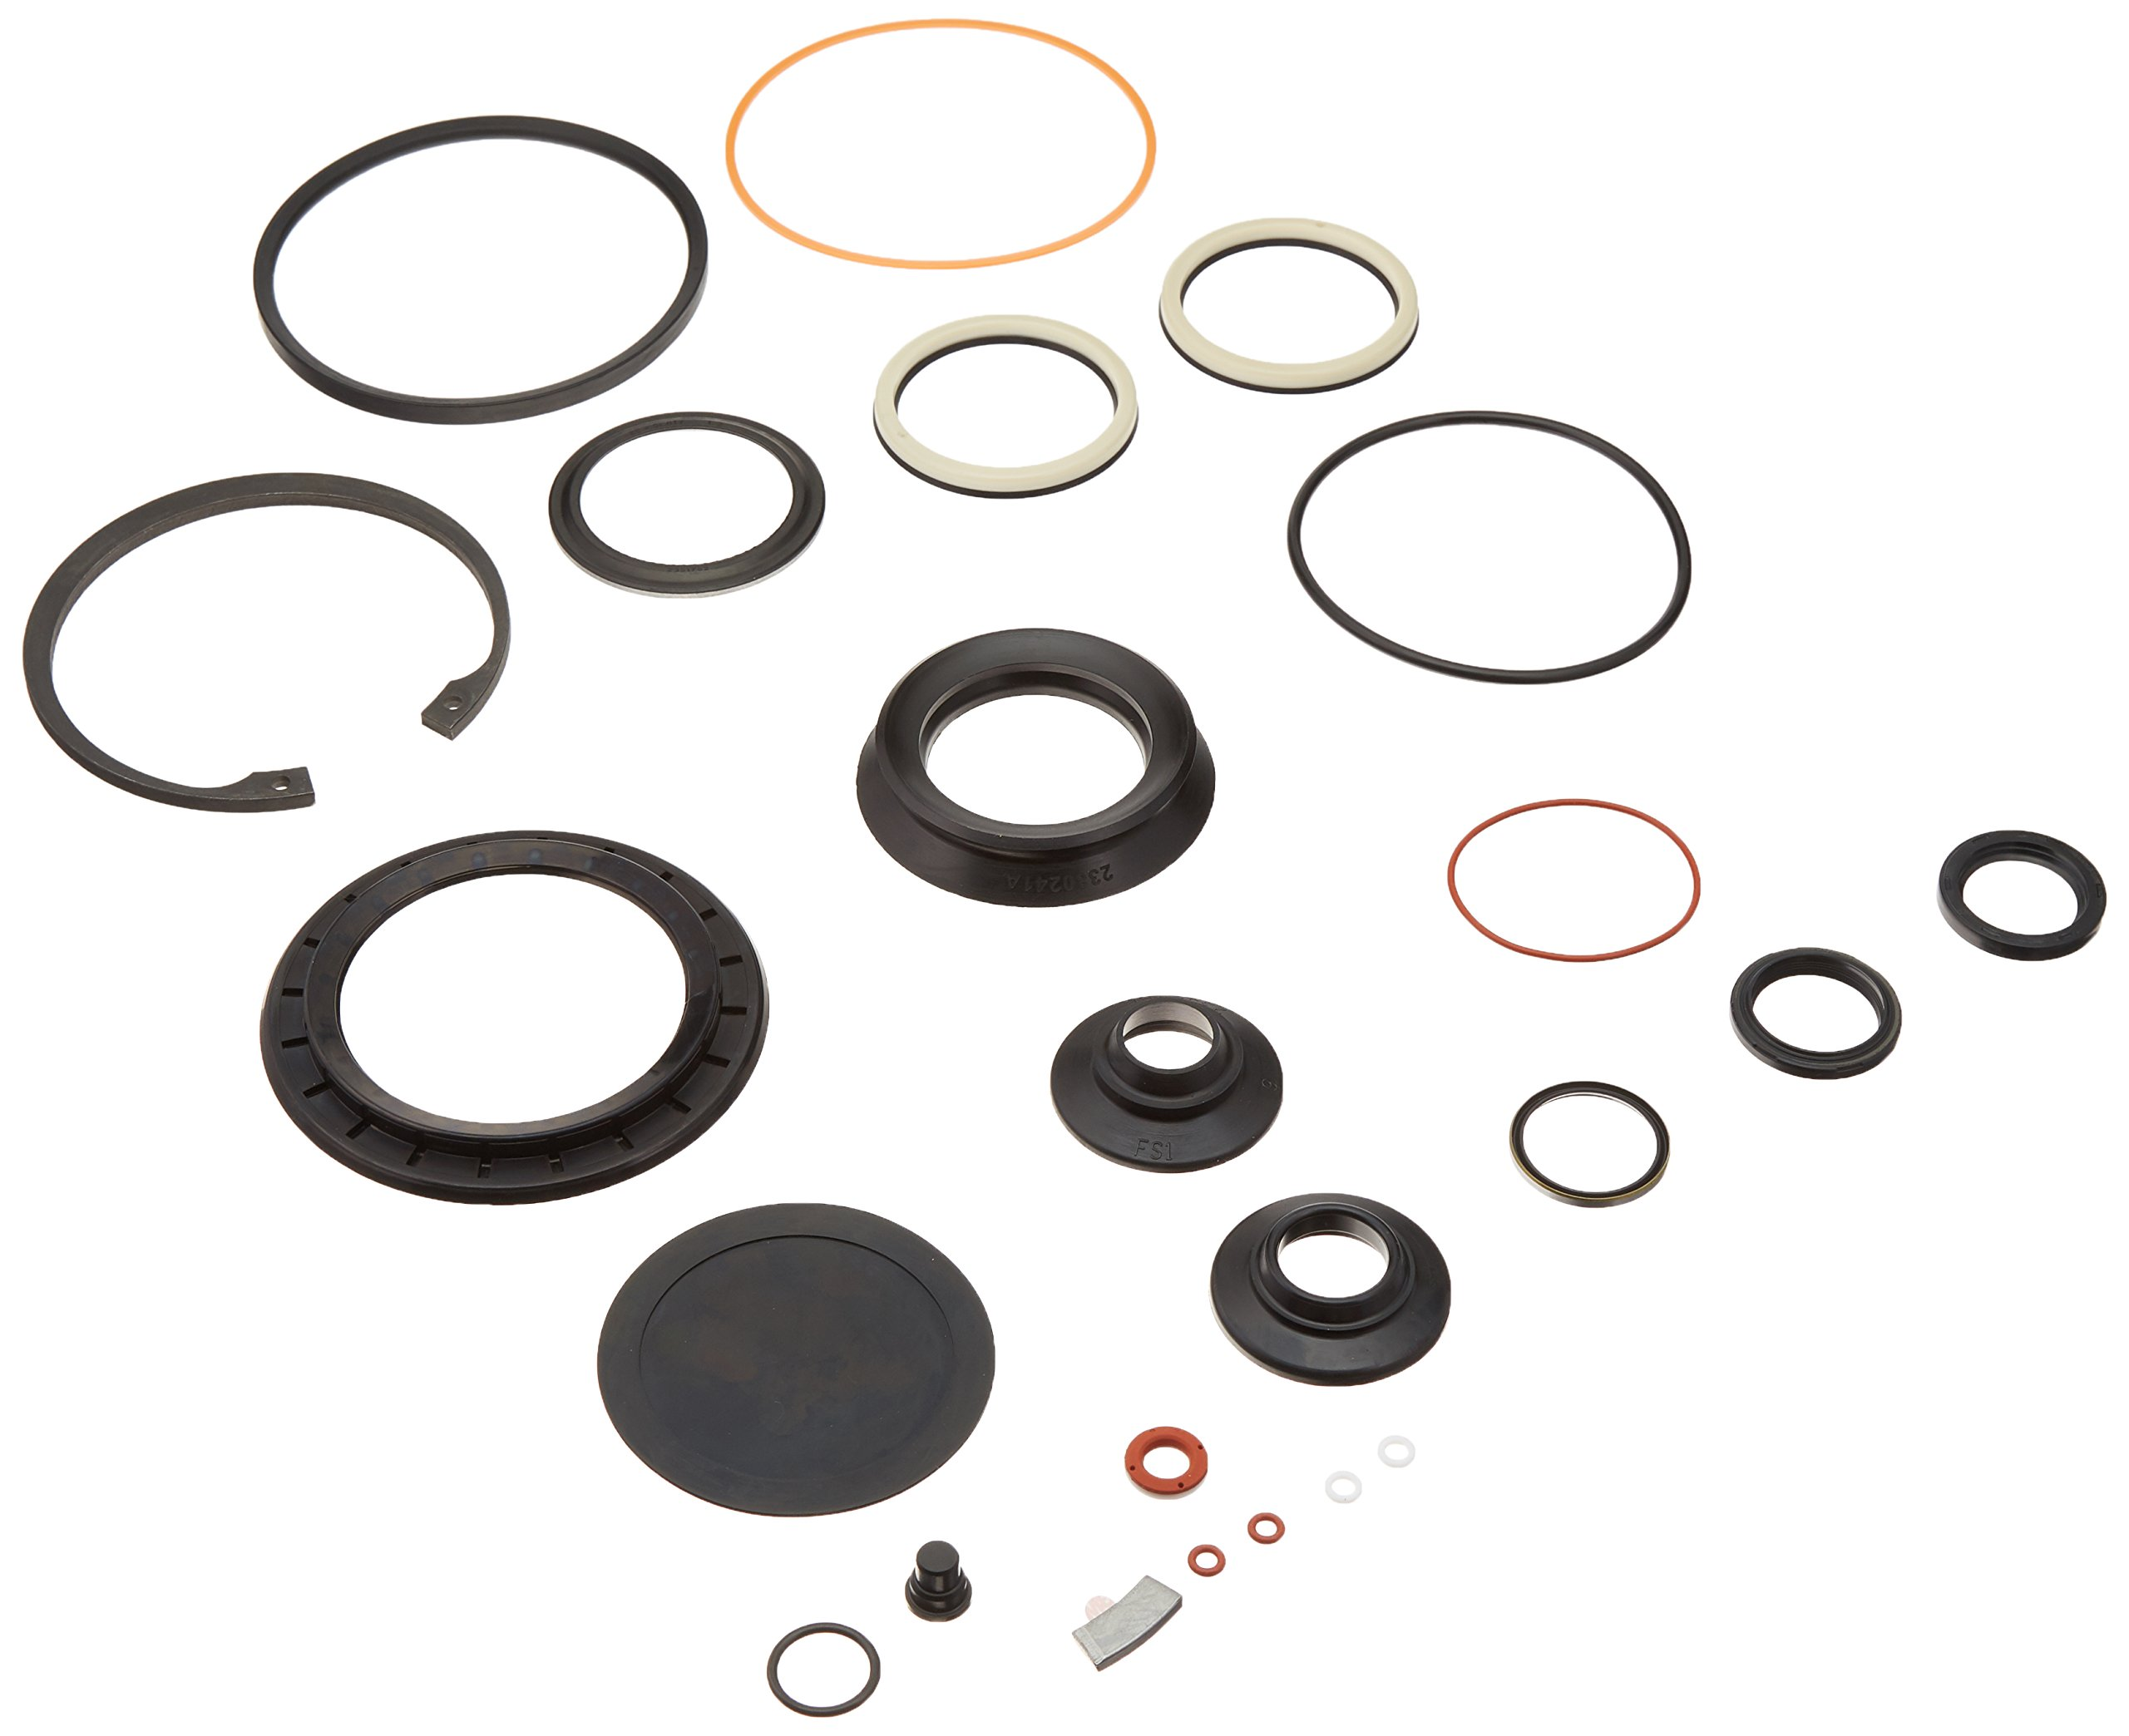 R. H. Sheppard 5545561 Combined Seal Kit with Snap Ring (5544861, 5545401, 5545321) by R. H. Sheppard